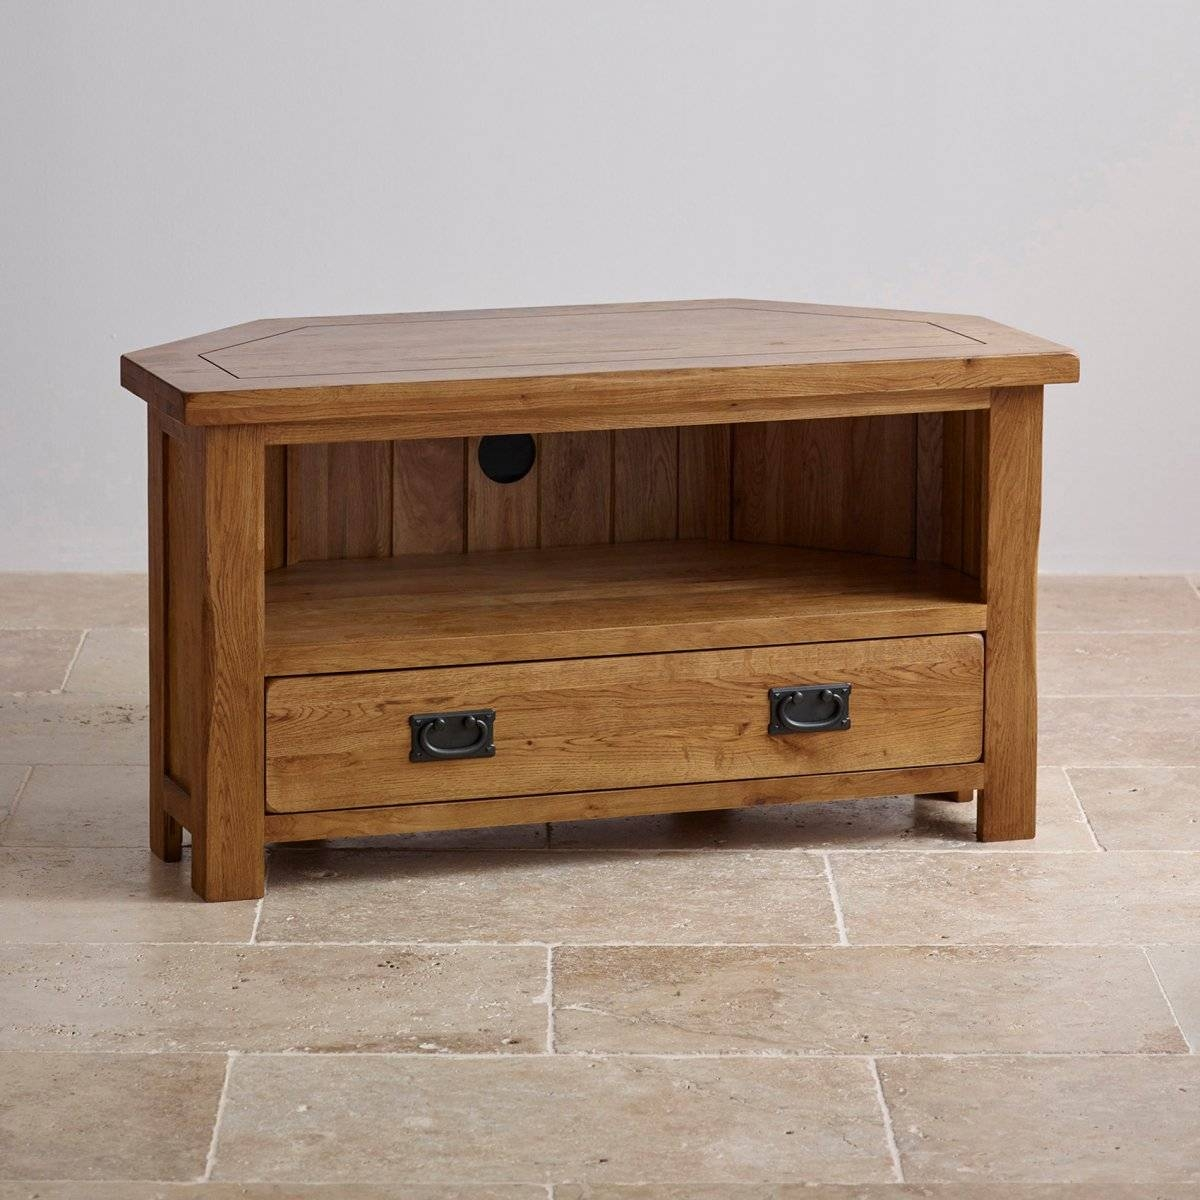 Original Rustic Corner Tv Cabinet In Solid Oak pertaining to Solid Wood Corner Tv Cabinets (Image 9 of 15)